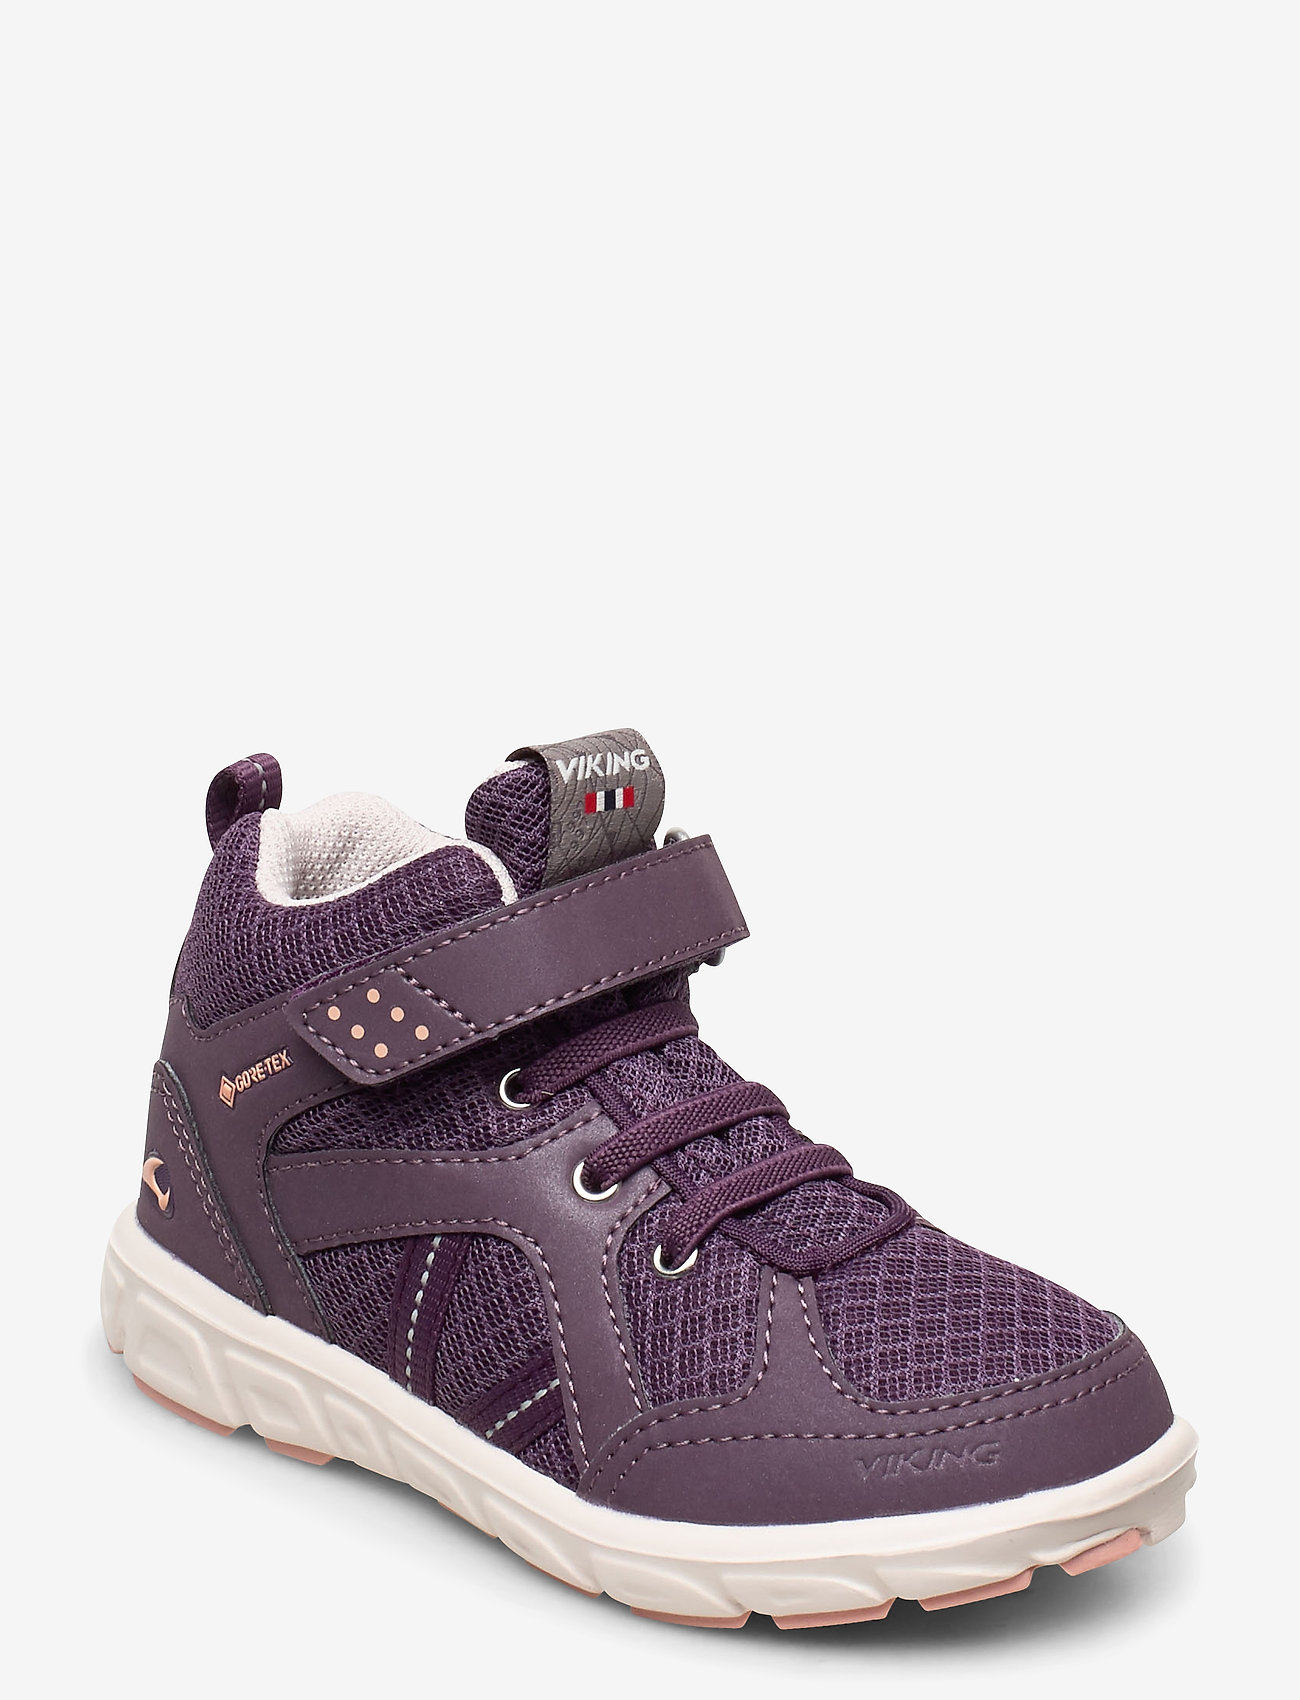 Viking - Alvdal Mid R GTX - tenisówki - purple/light lilac - 0